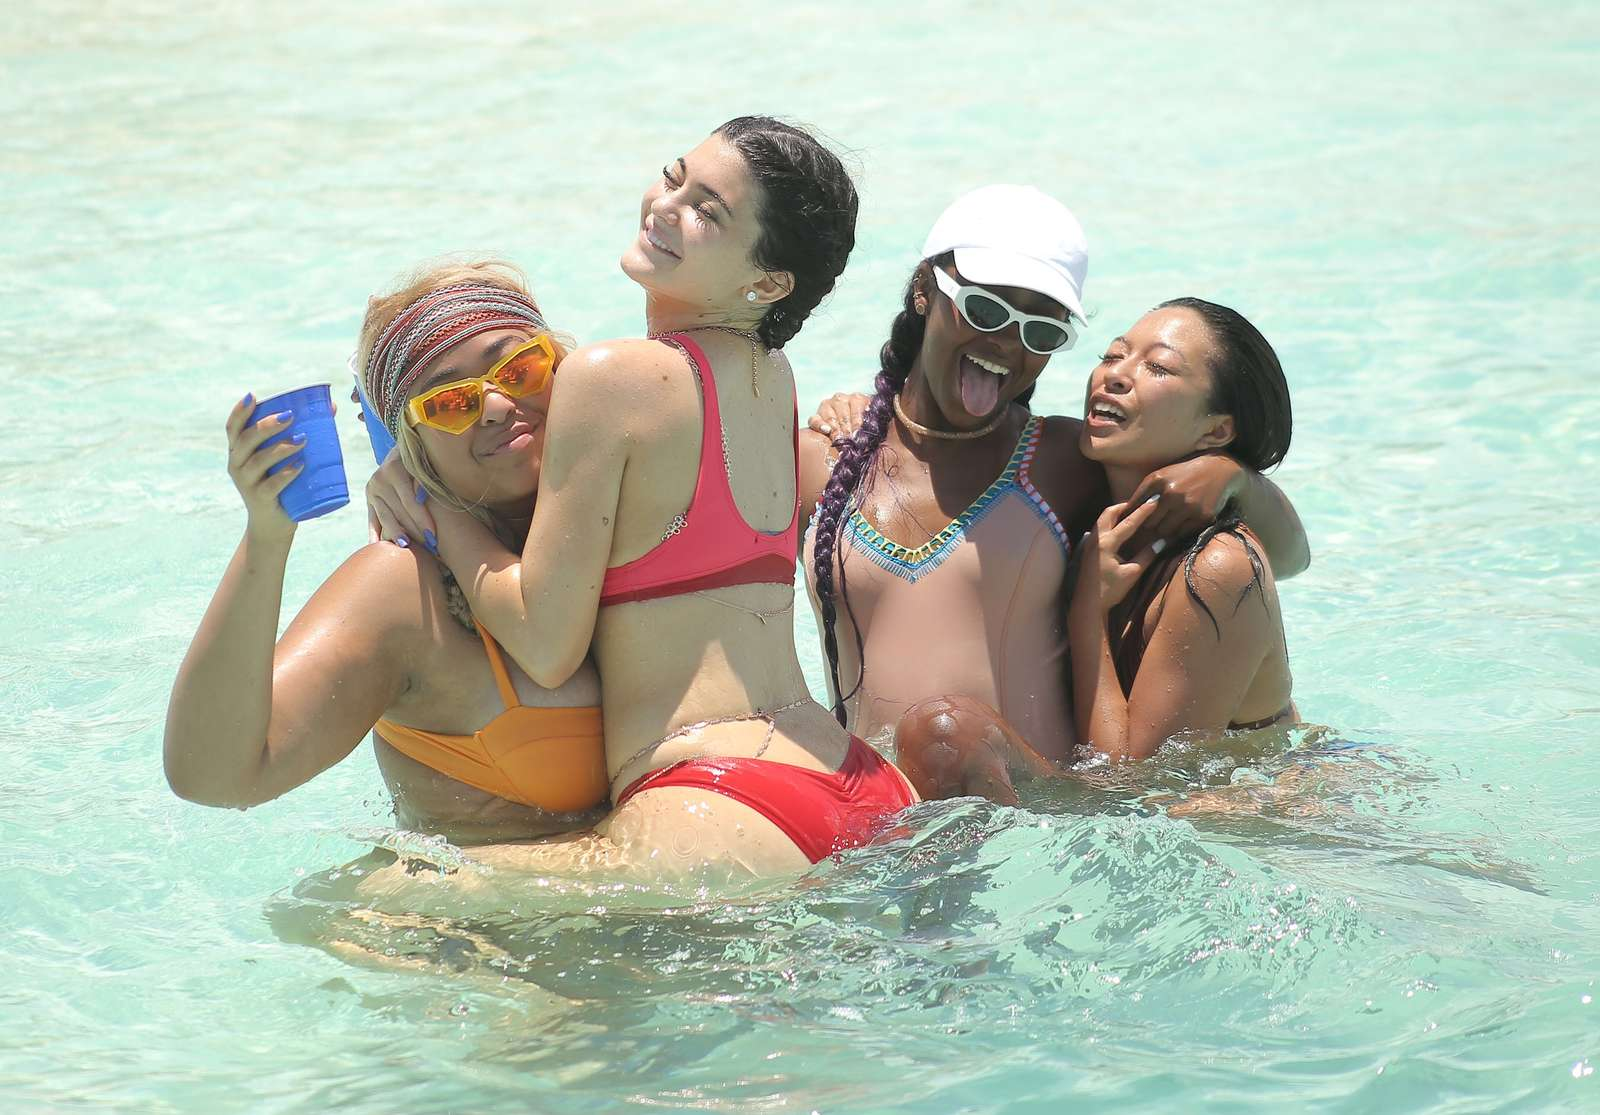 Sex in turks and caicos